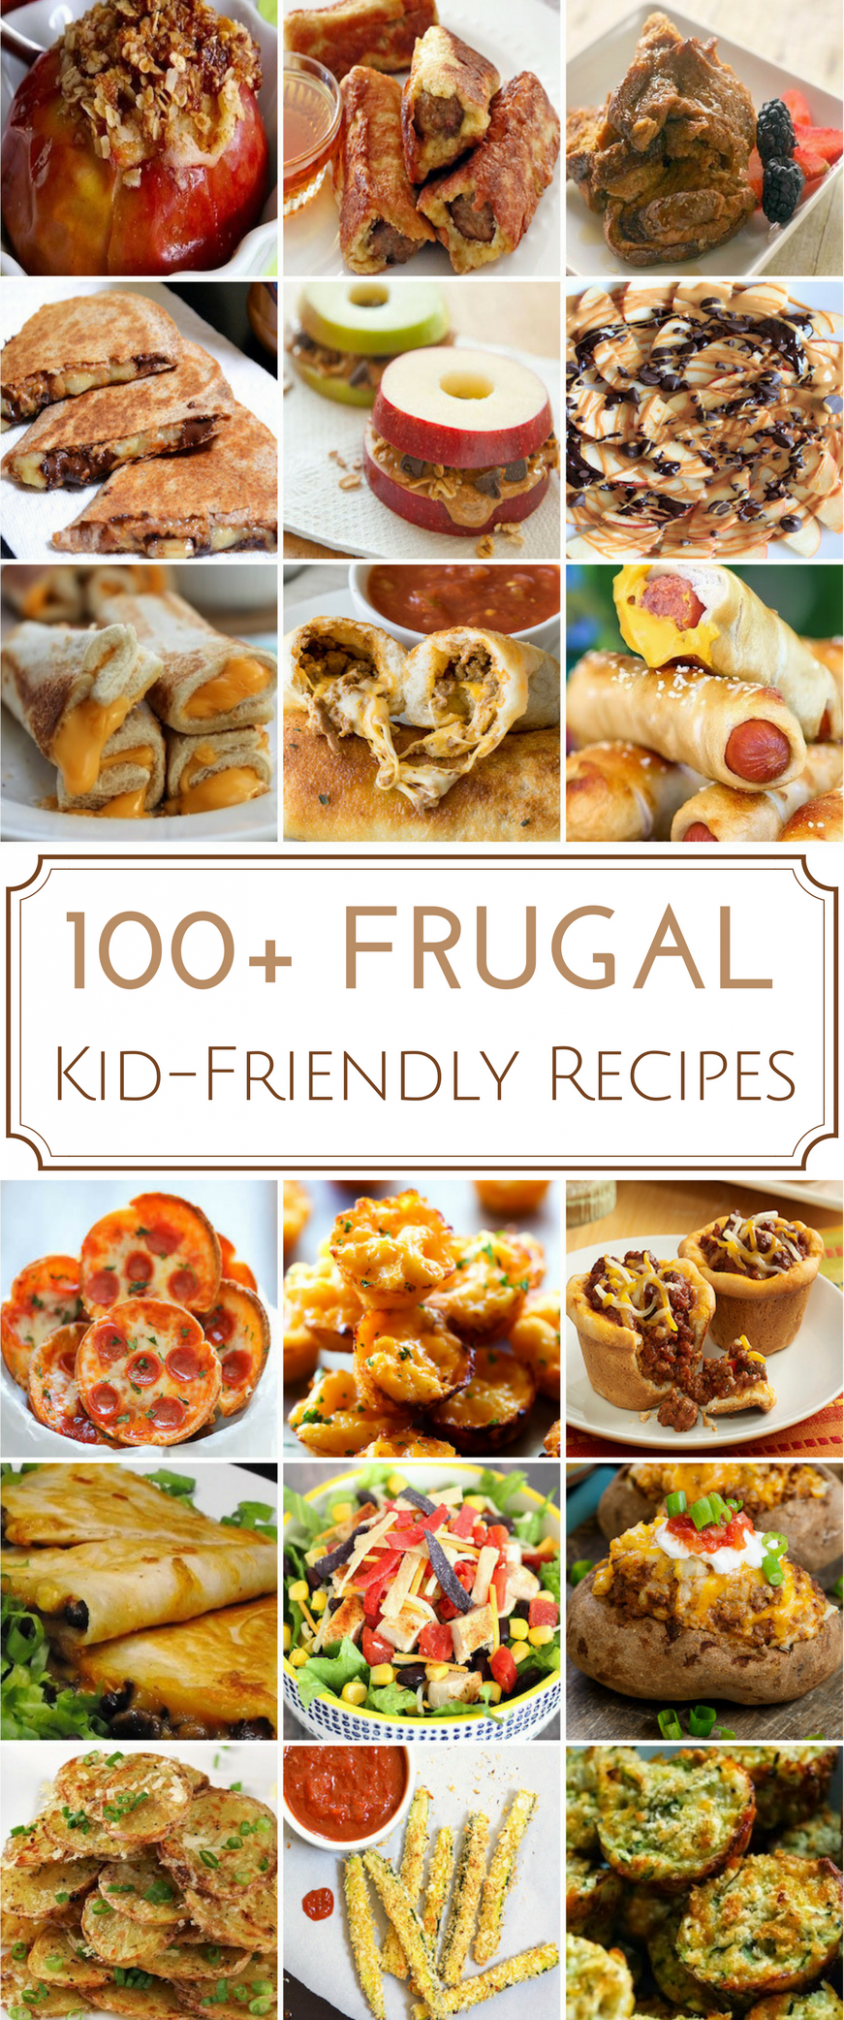 11 Frugal Kid-Friendly Recipes | Kid friendly meals, Frugal meals ...